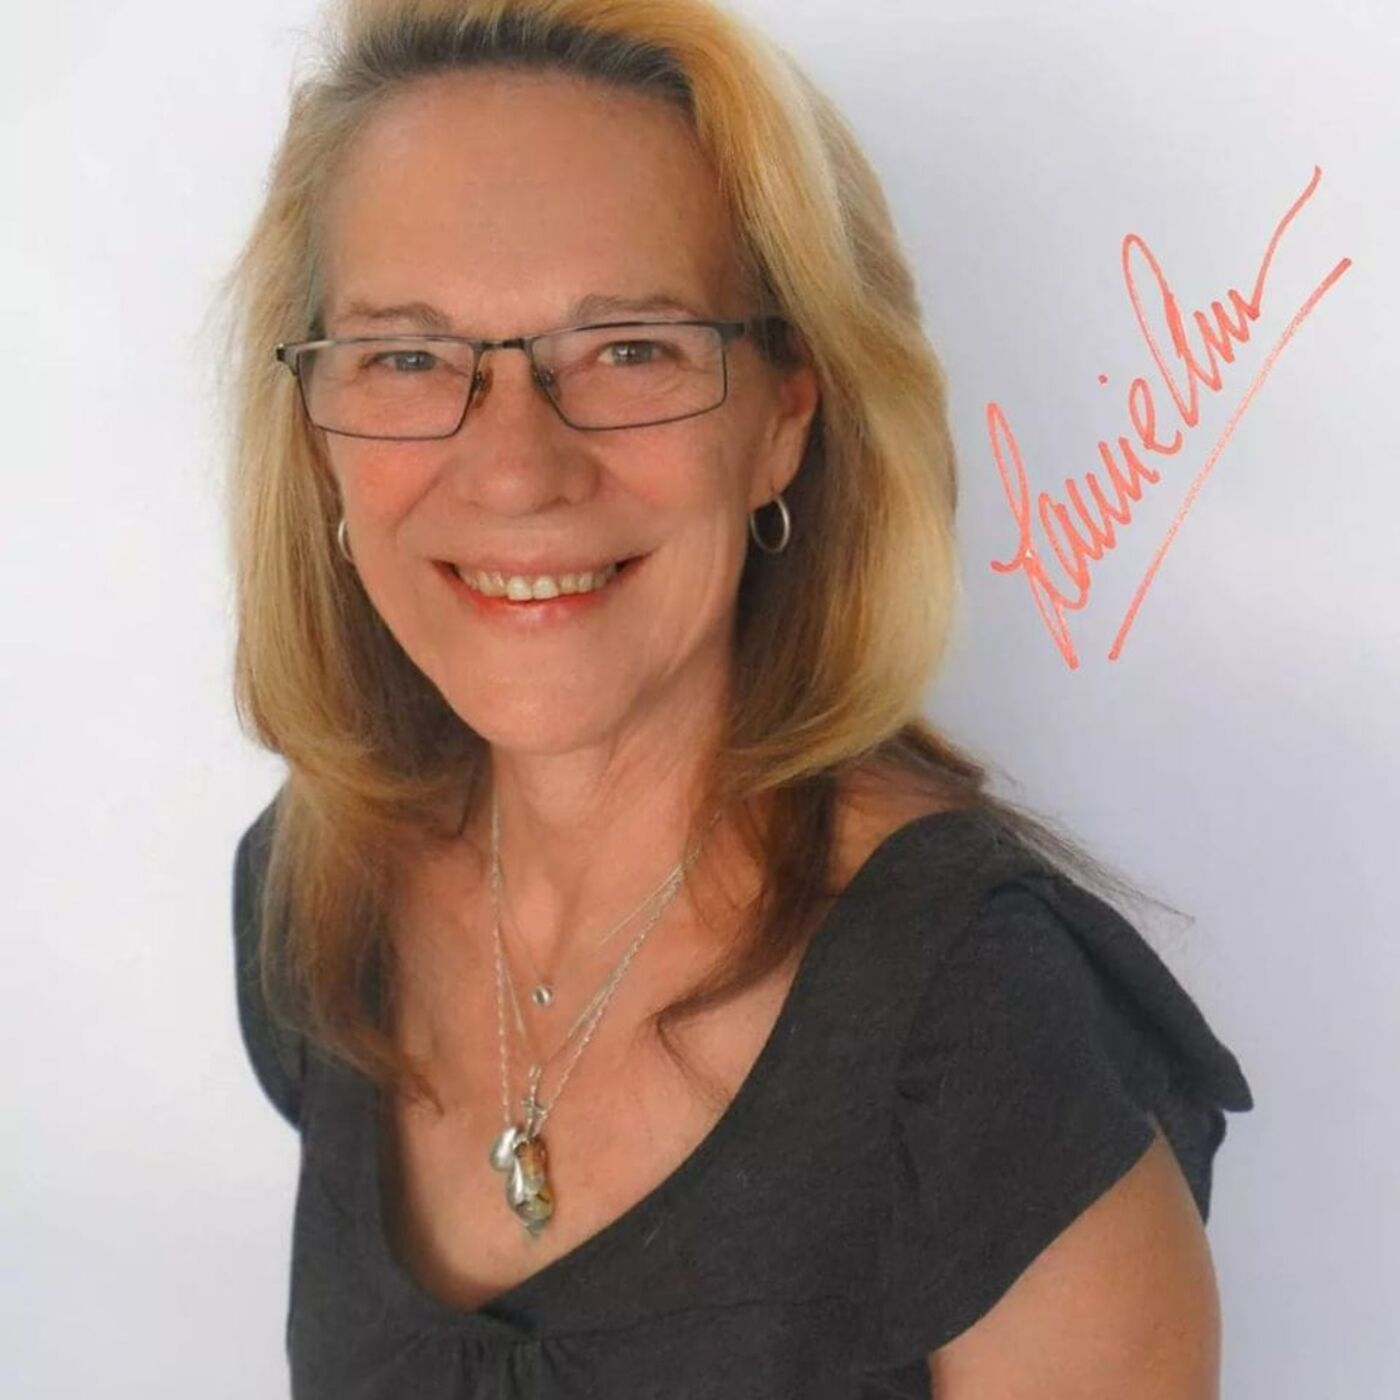 LIFT Your Story with LaurieAnn on Learning about Handwriting Analysis